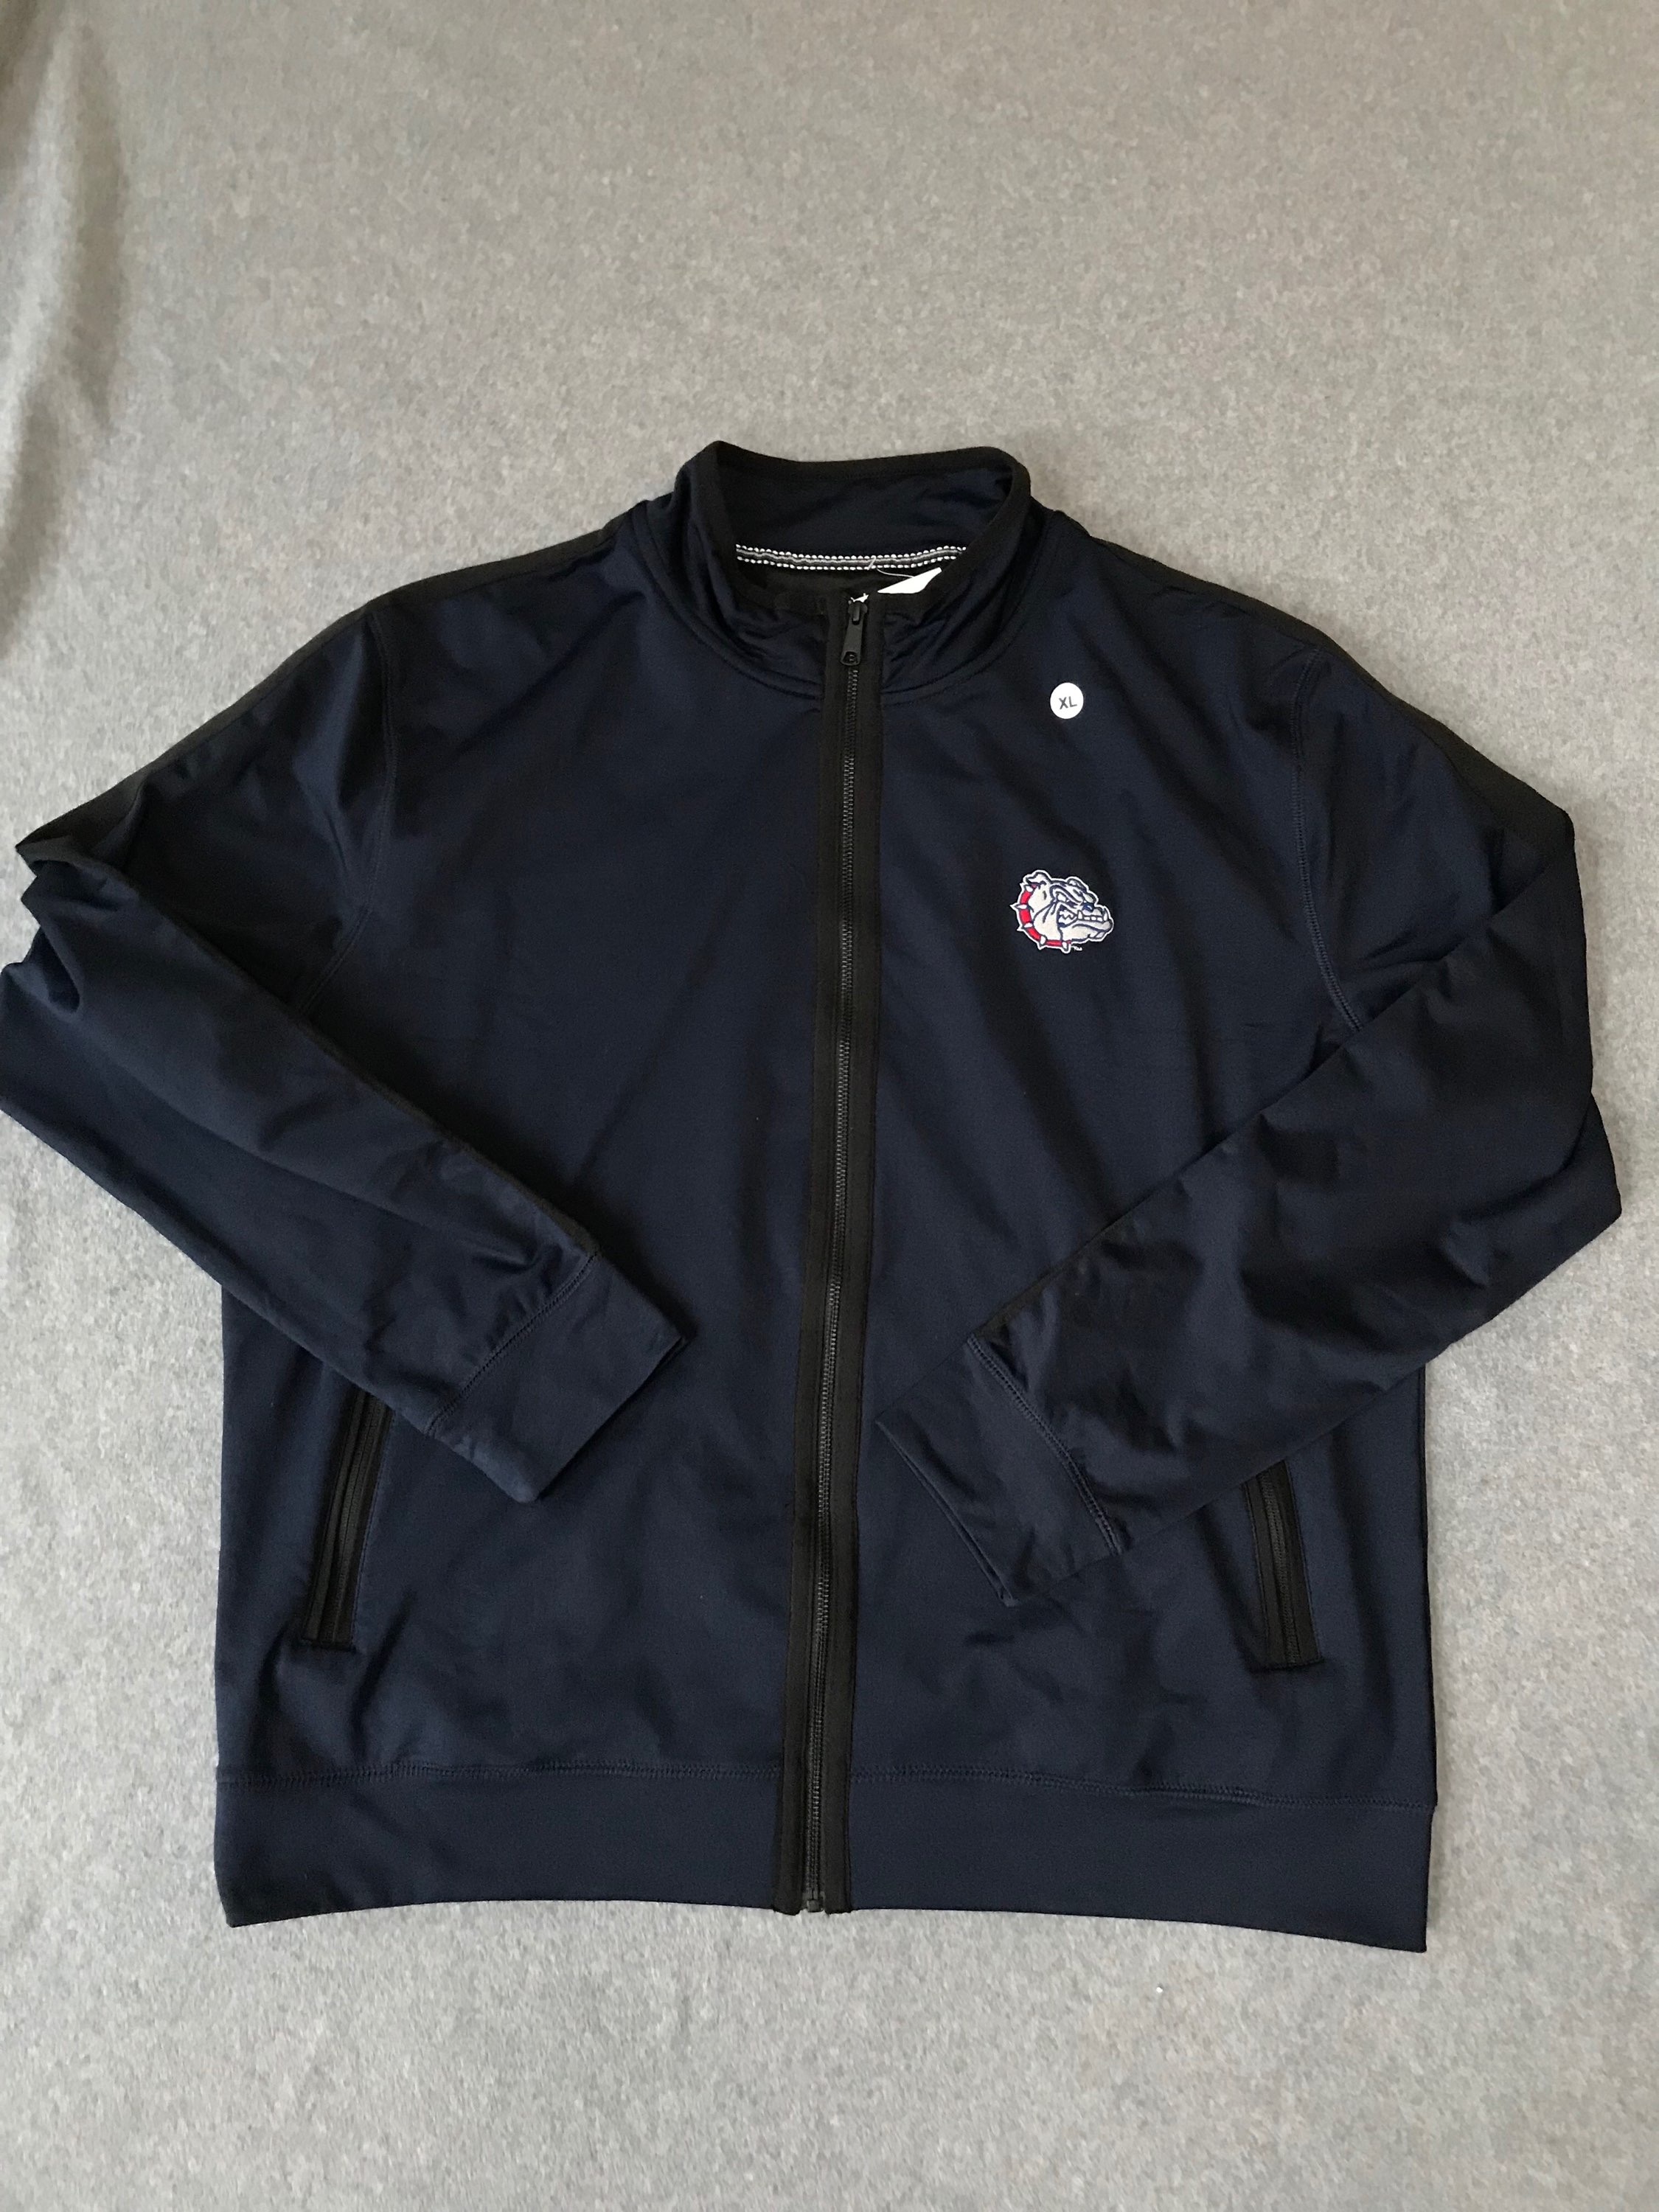 Gonzaga NWT Full Zip Embroidered Size XL